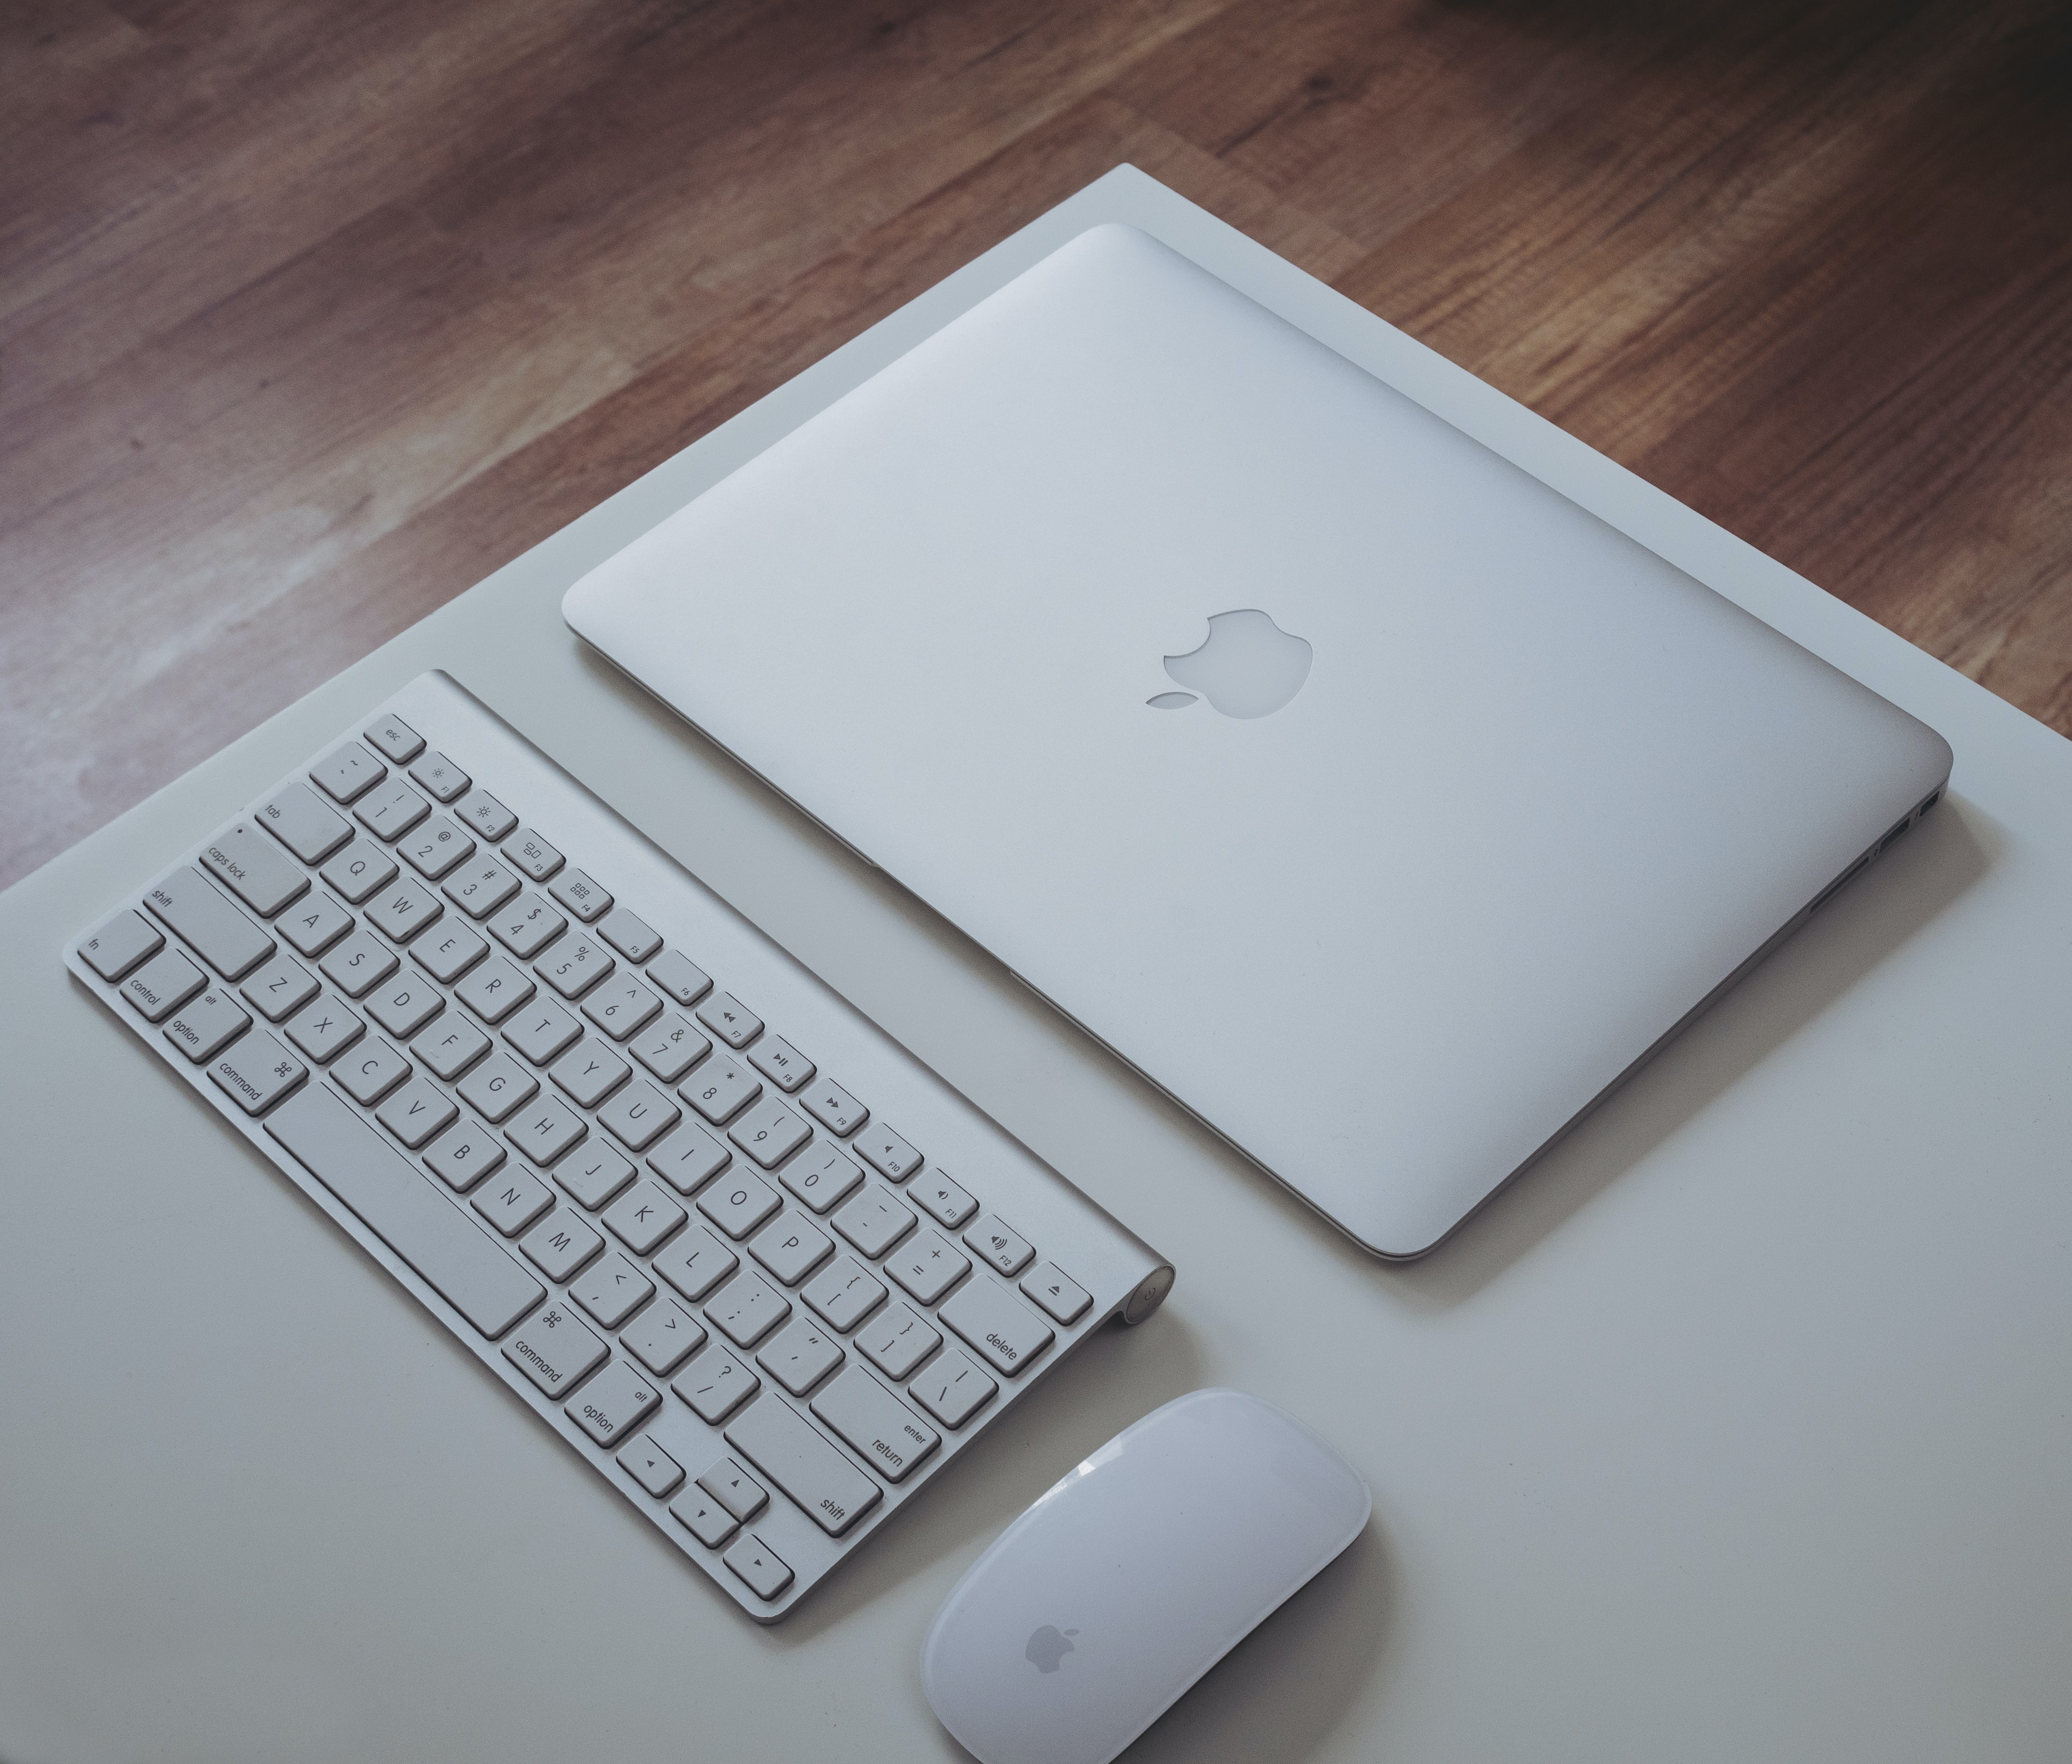 silver MacBook near Apple Magic Keyboard and Apple Magic Mouse on white surface